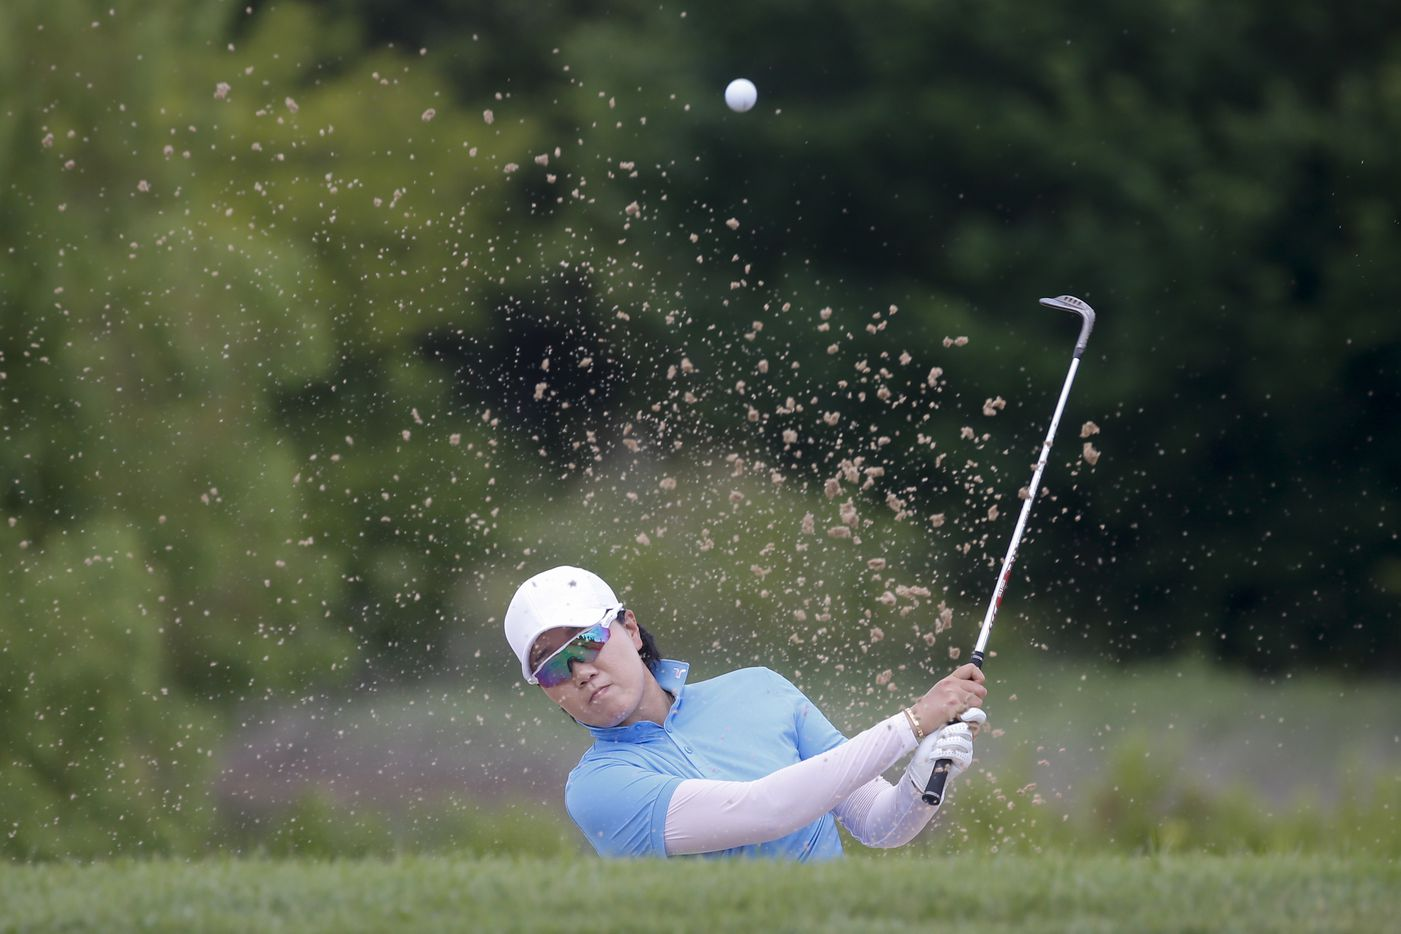 Professional golfer Jeongeun Lee plays out of the No. 9 fairway side bunker during the second round of the LPGA VOA Classic on Friday, July 2, 2021, in The Colony, Texas. (Elias Valverde II/The Dallas Morning News)